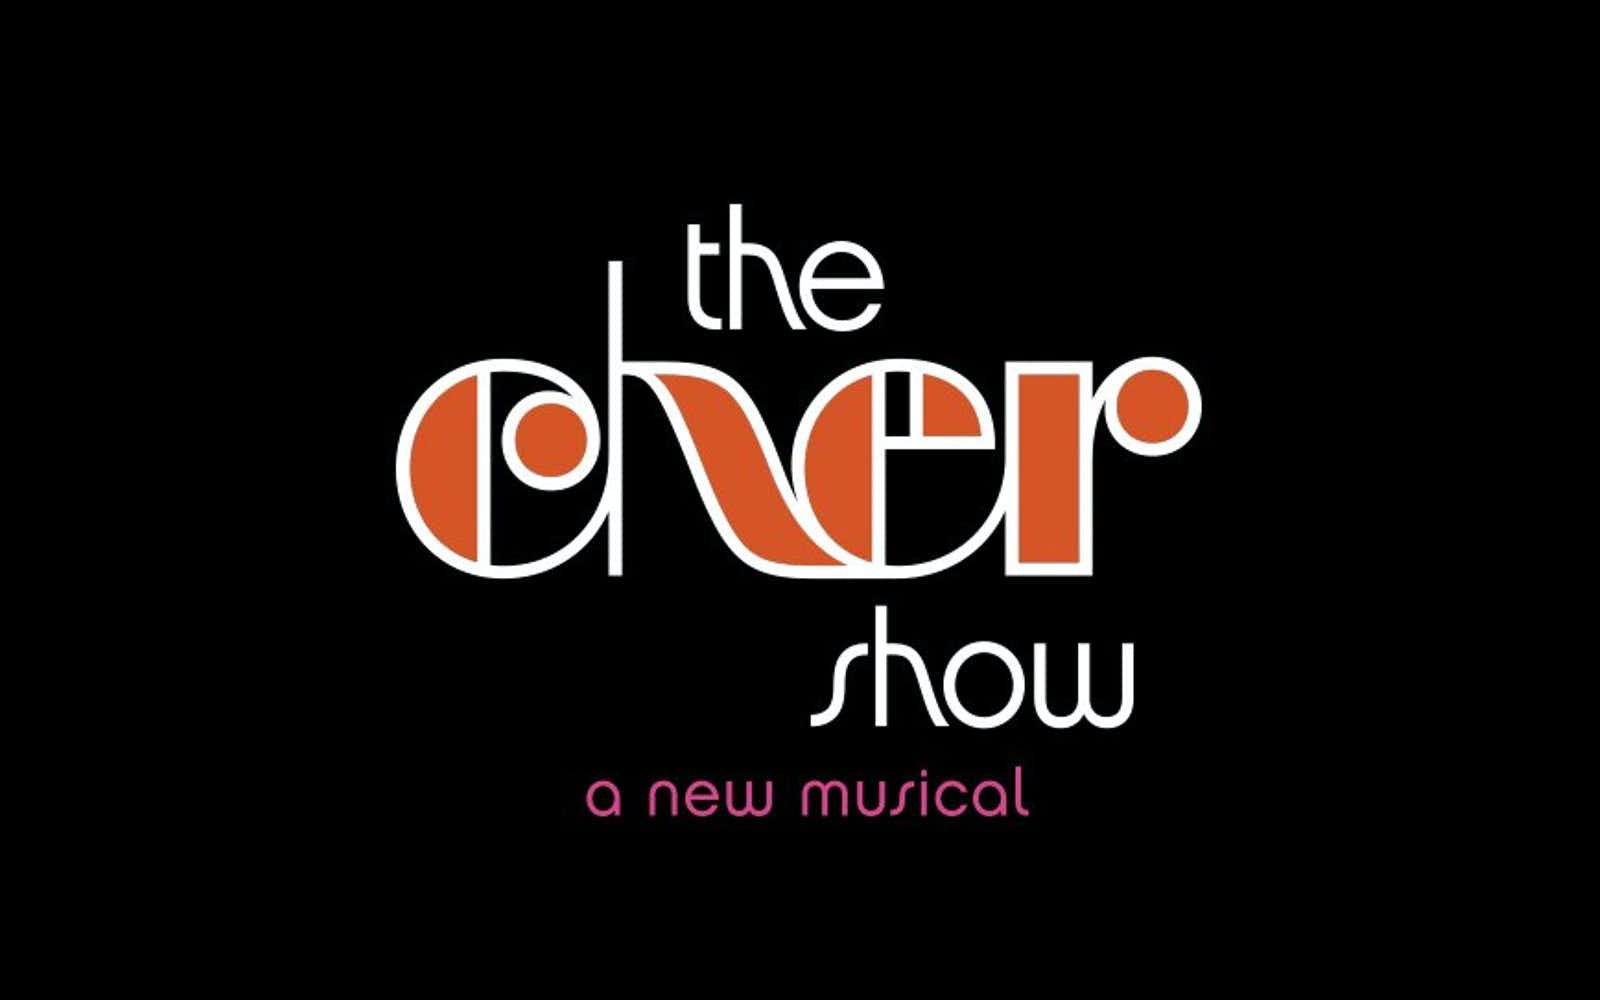 The cher show broadway tickets